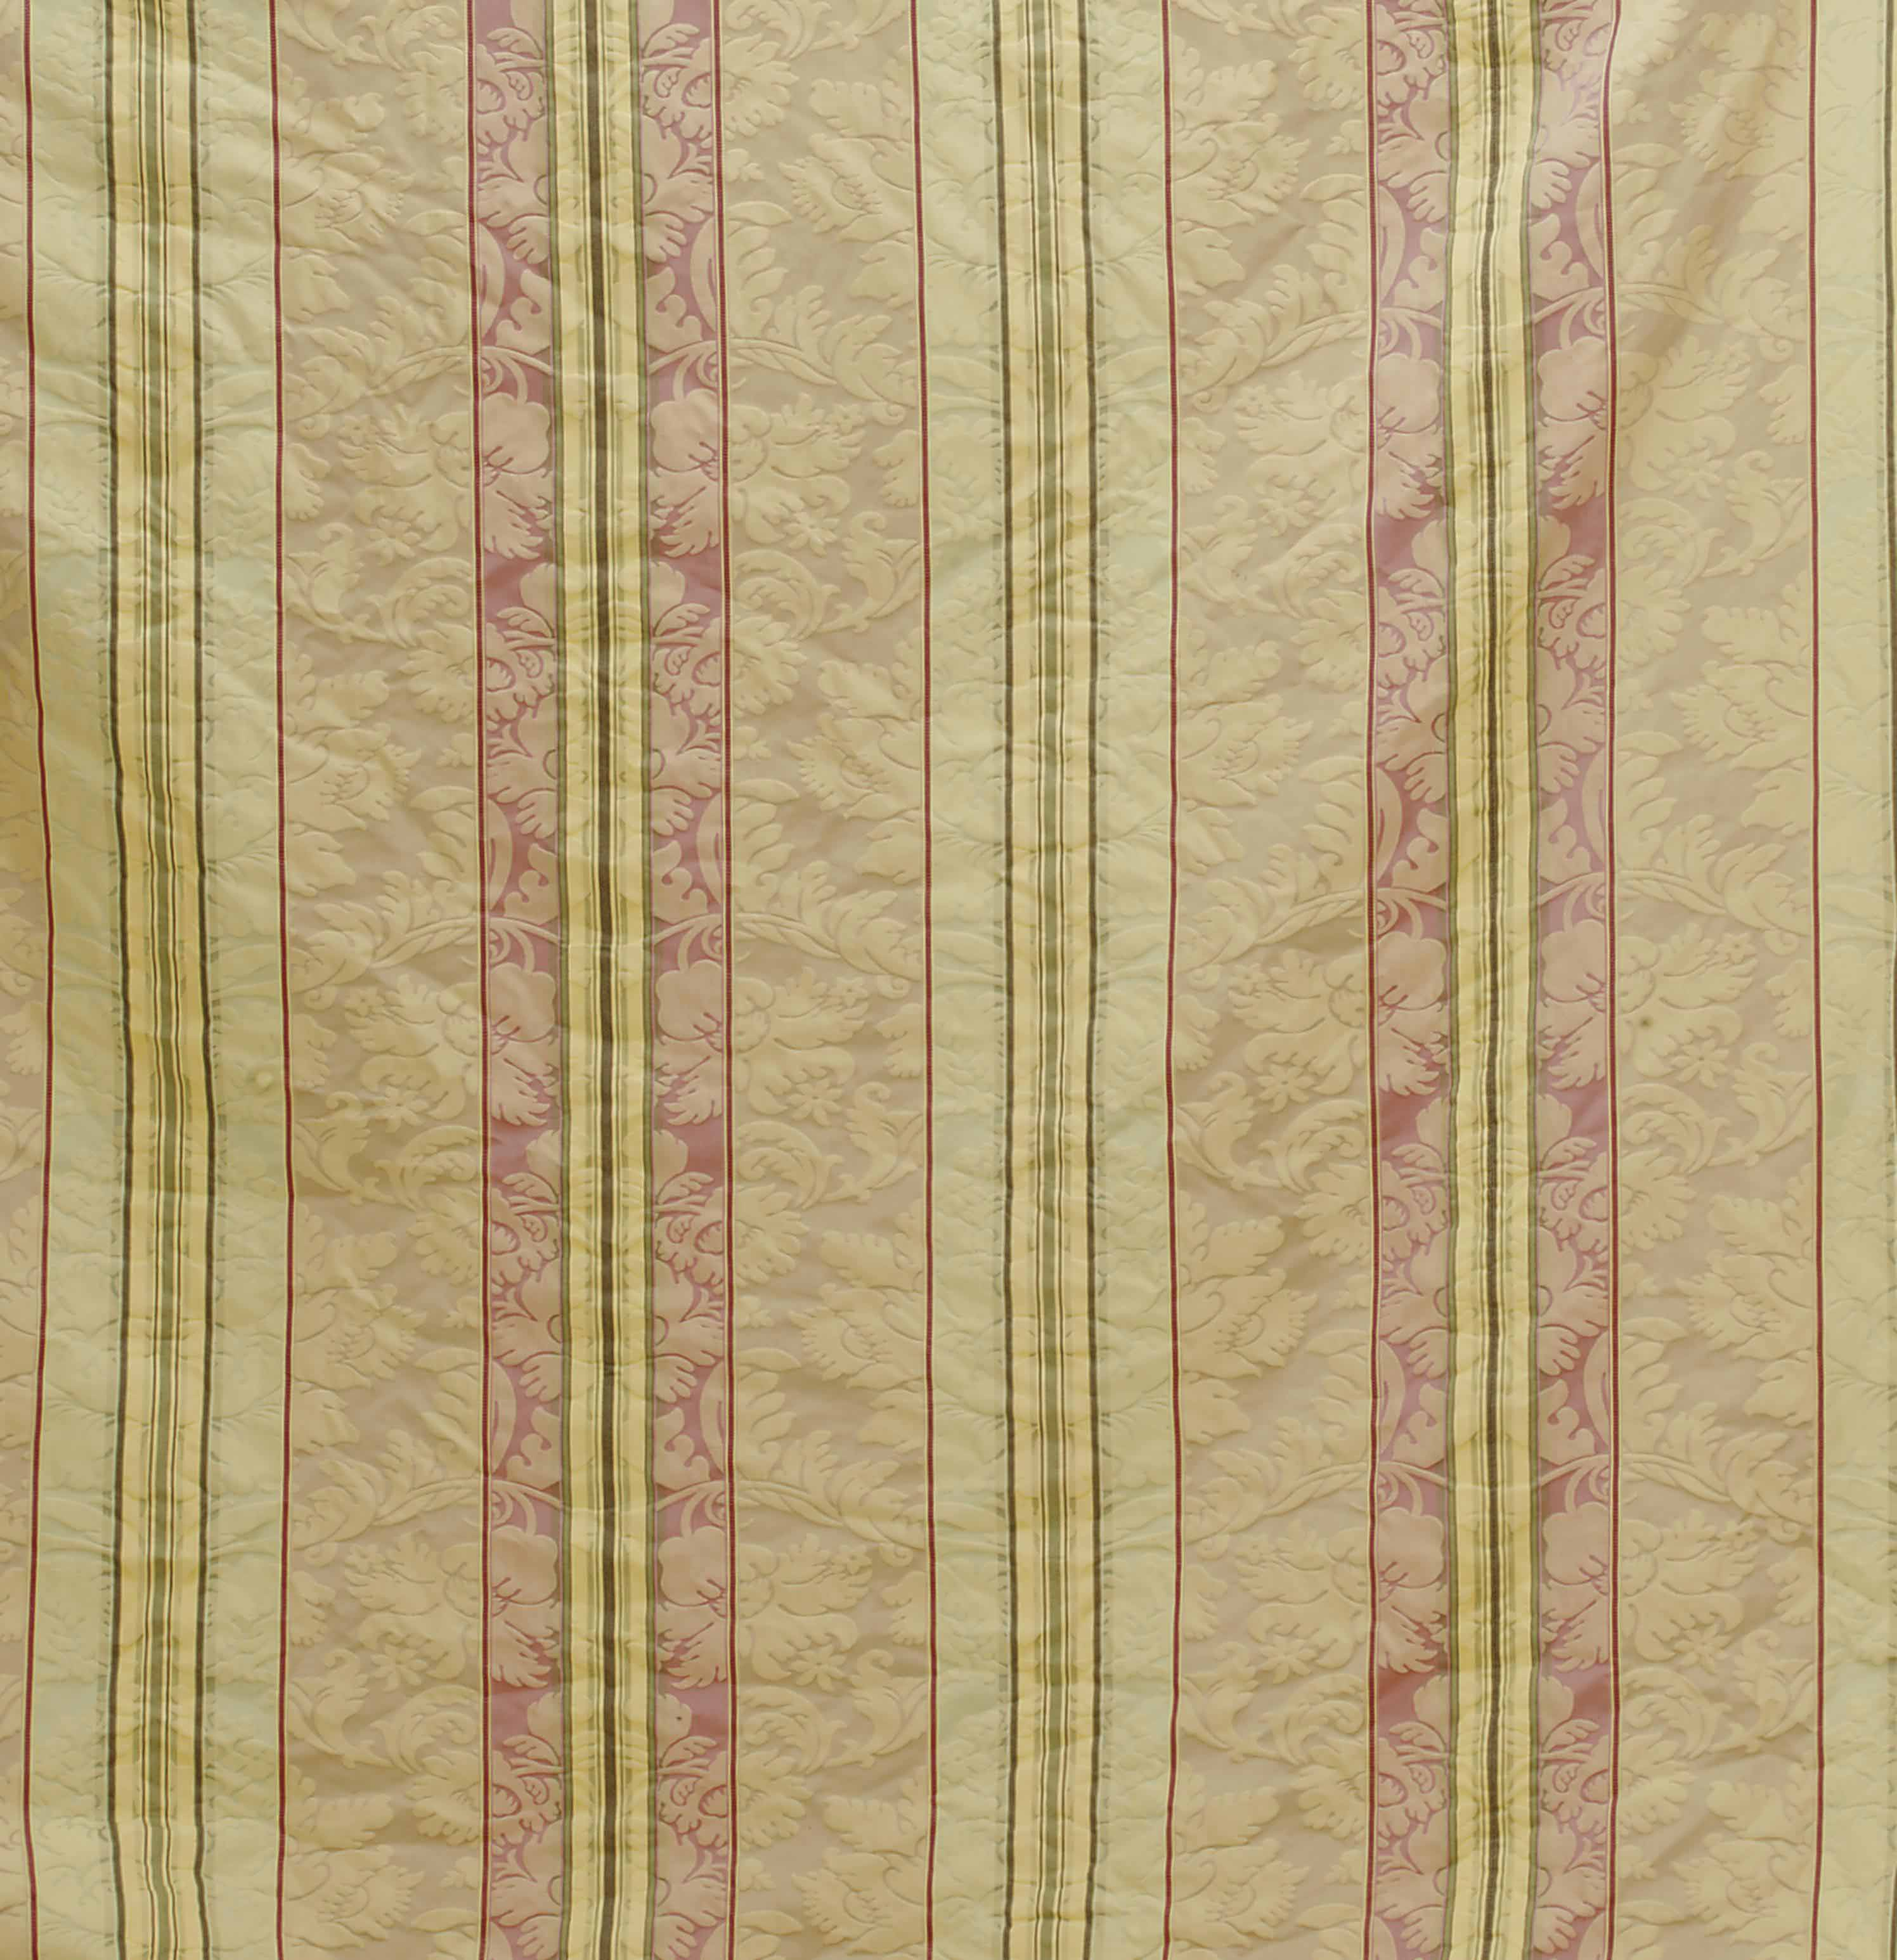 TWO STRIPED SILK DAMASK CURTAIN PANELS,